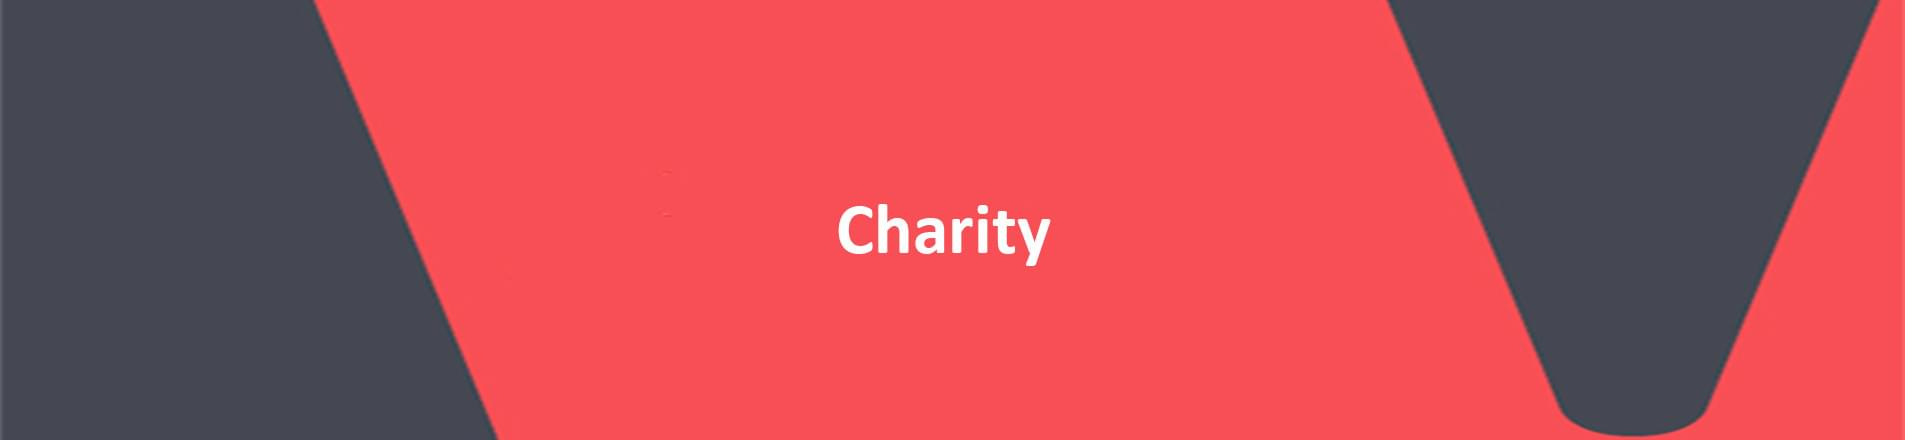 Image of the word charity on a red background